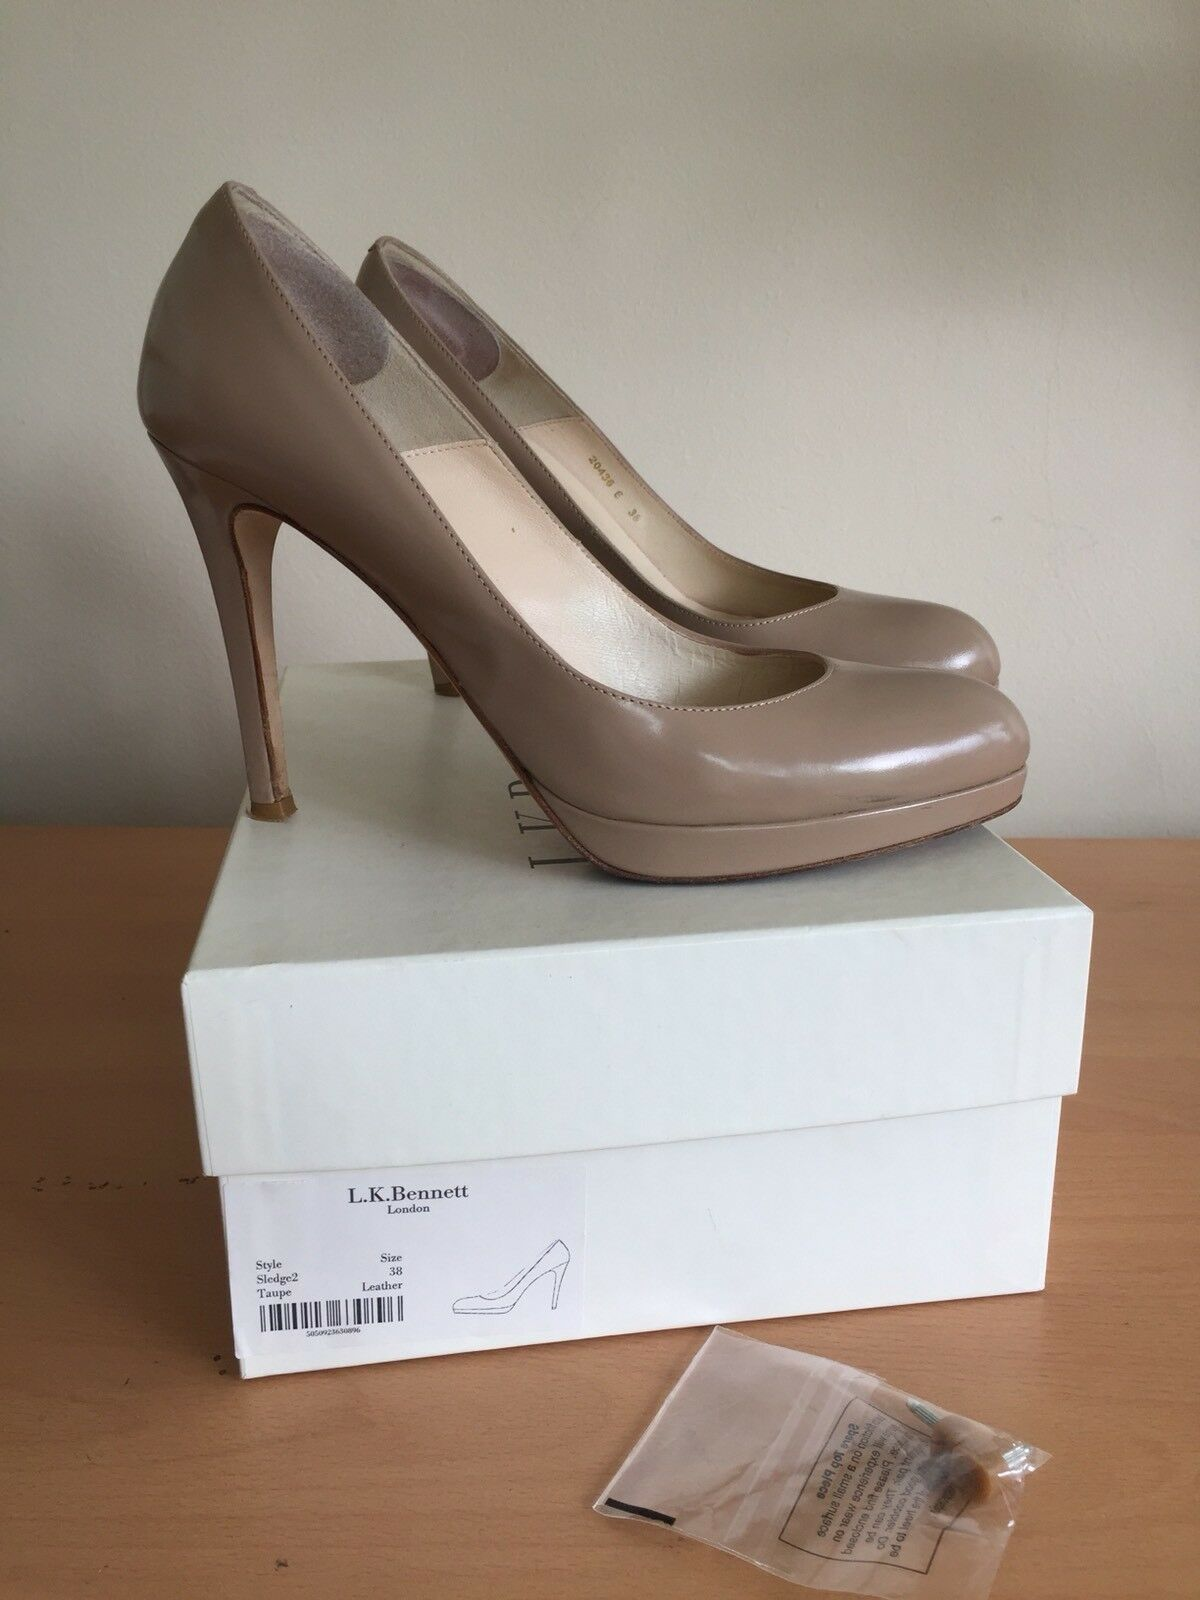 Lk Bennett 38, Uk 5 Duchess Beige, Nude Heels, As Seen On Duchess 5  Fab 0b5d7e